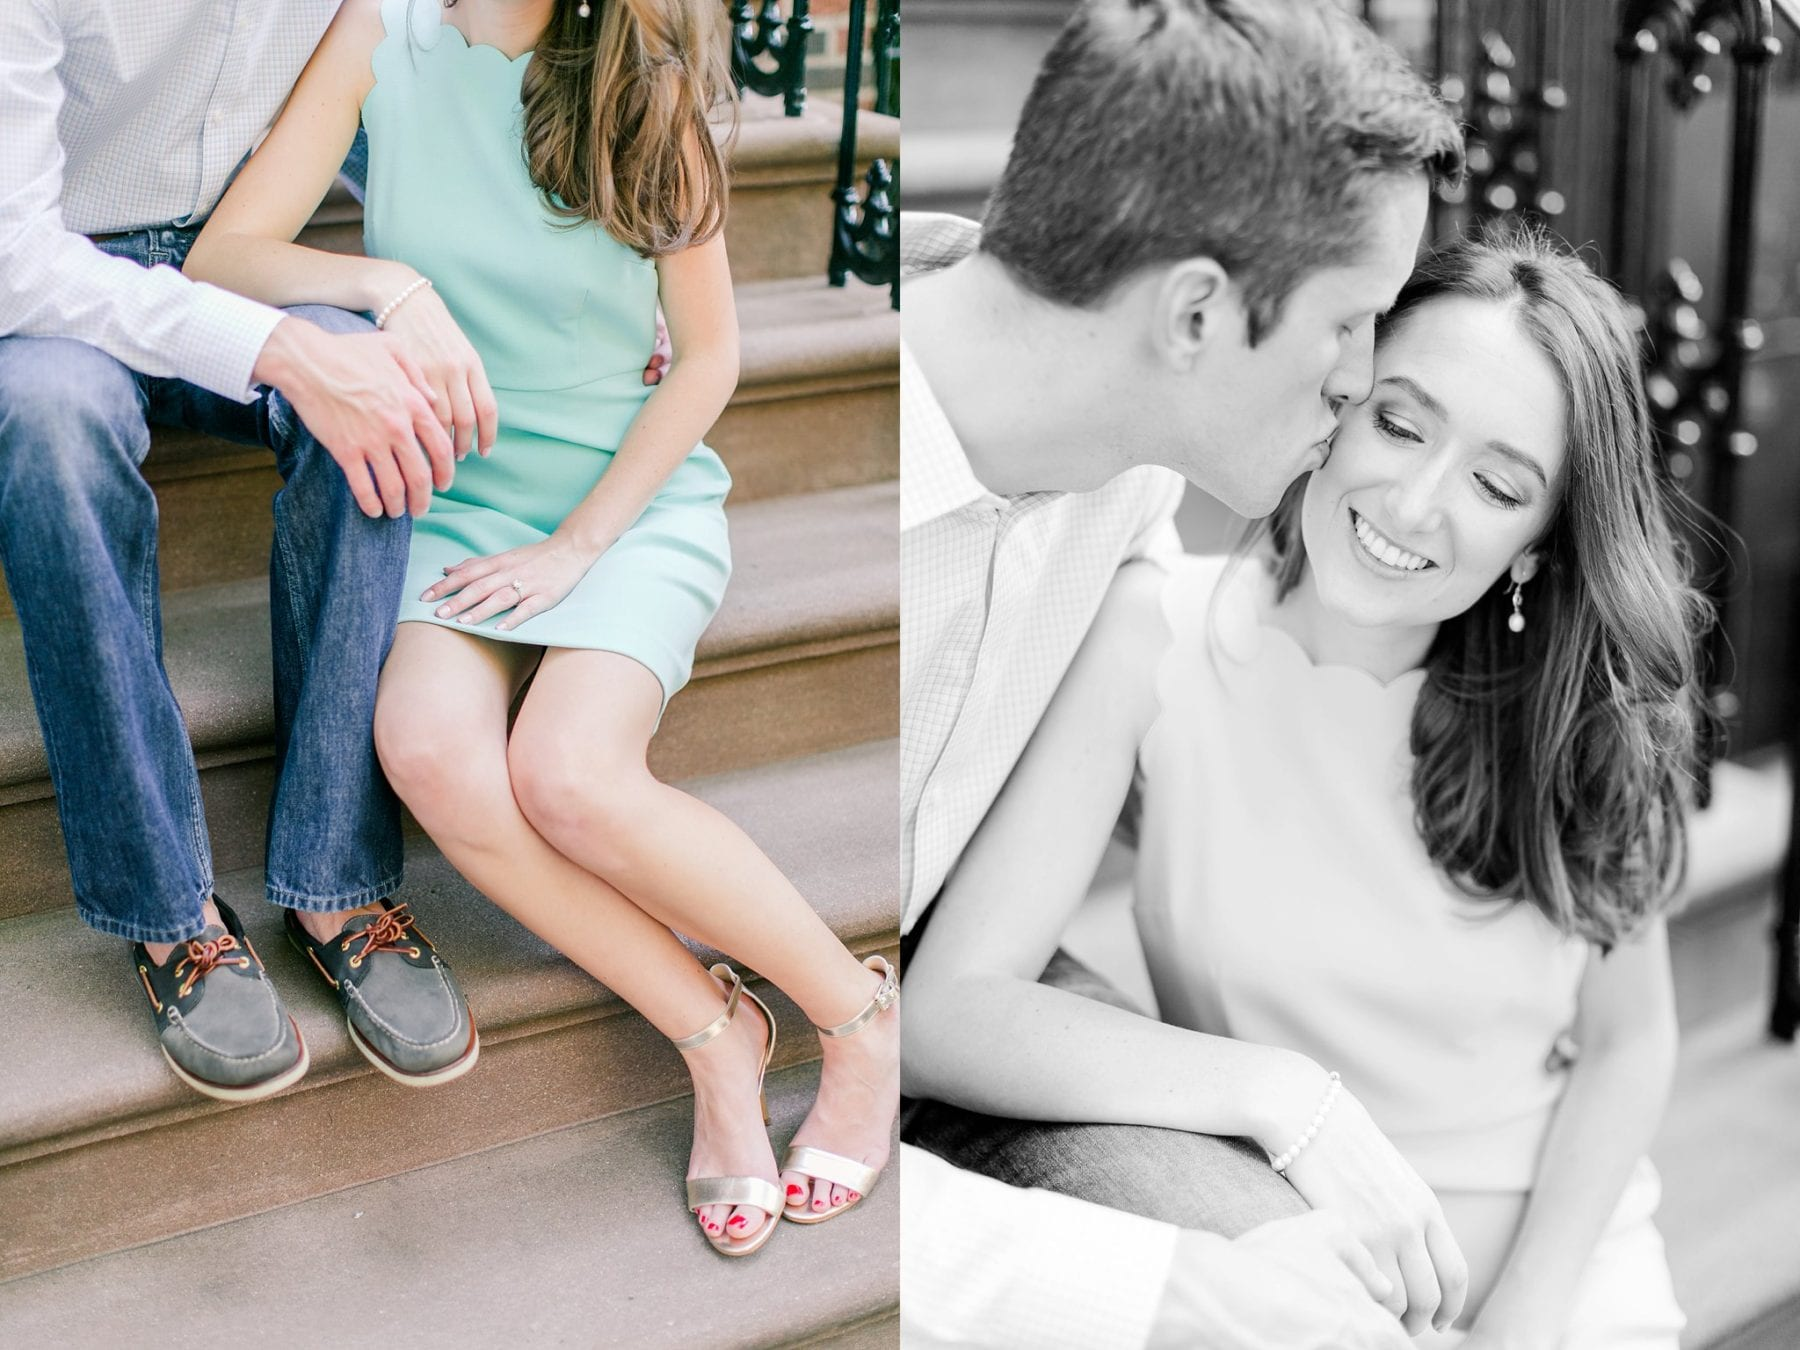 West Village Central Park Engagement Photos NYC Wedding Photographer Megan Kelsey Photography-39.jpg